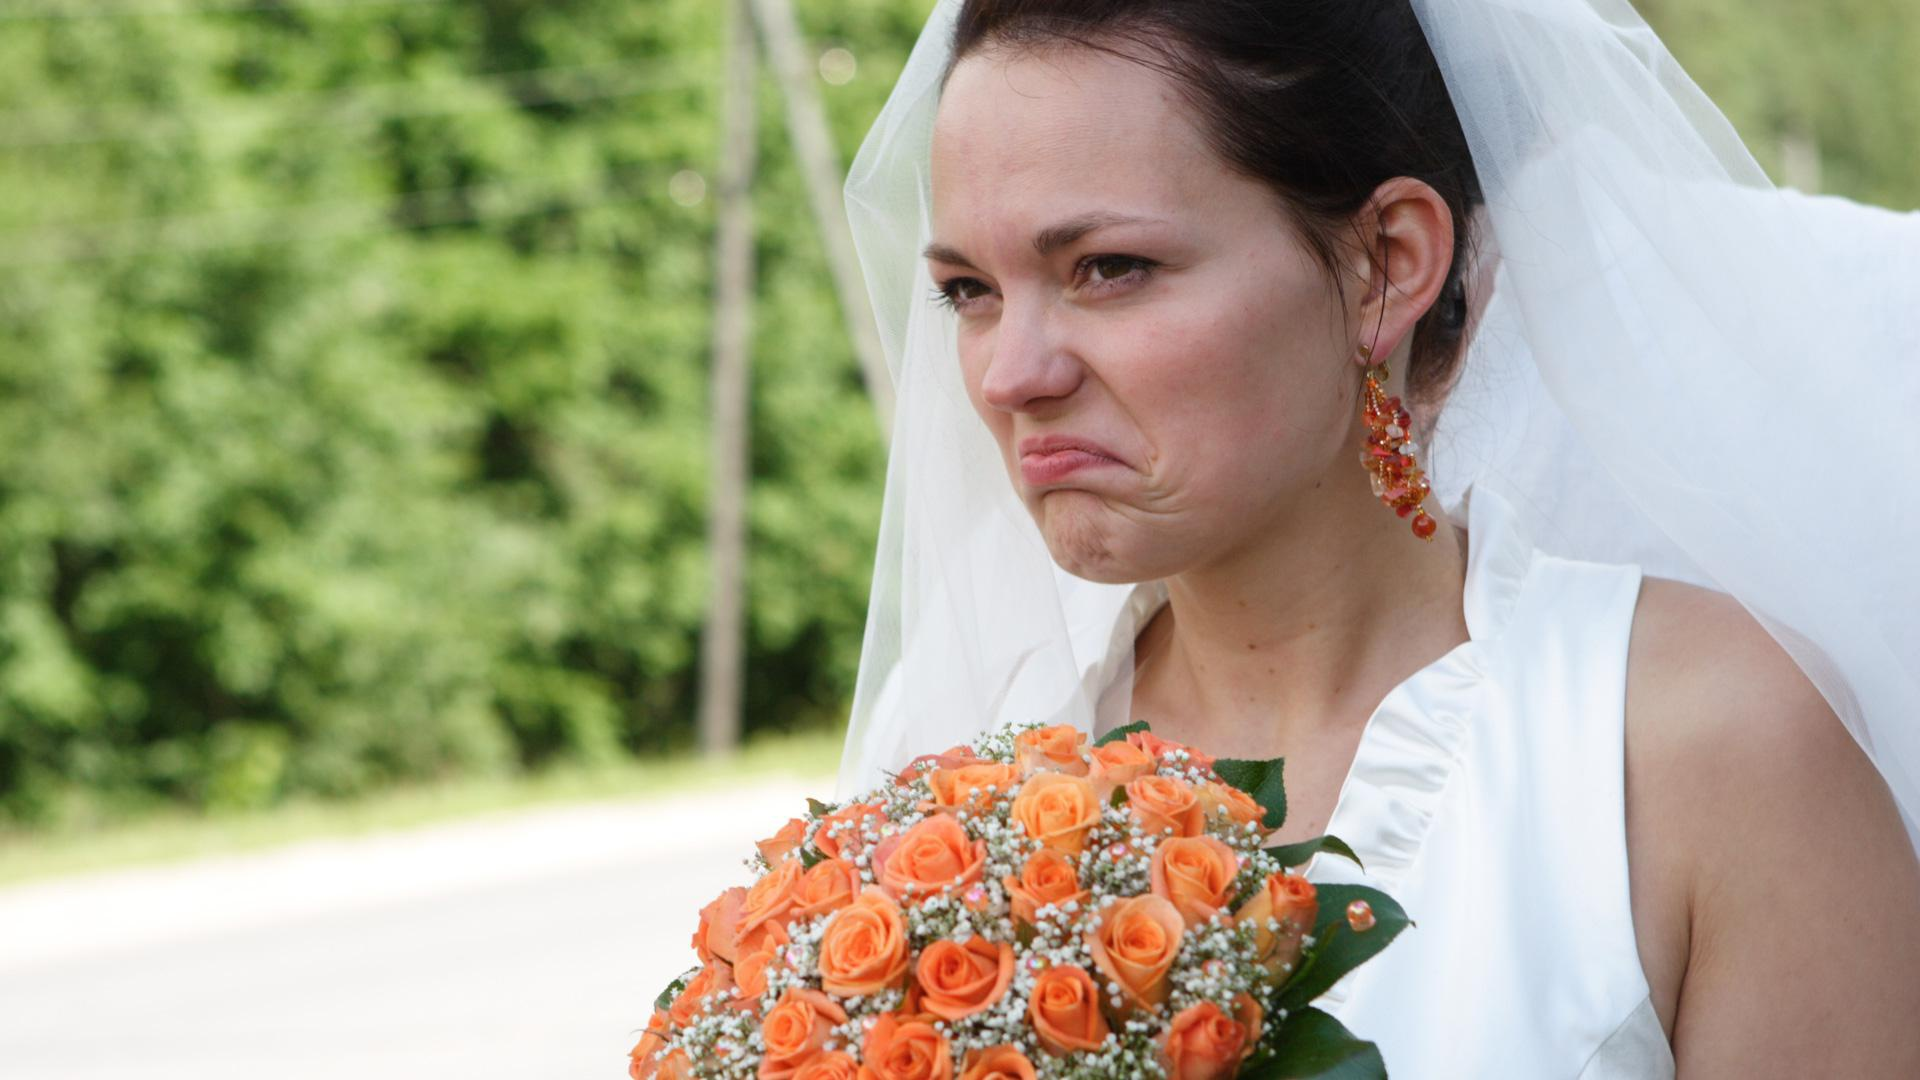 Bride's Facebook post calls out her frenemies — Did she go too far?